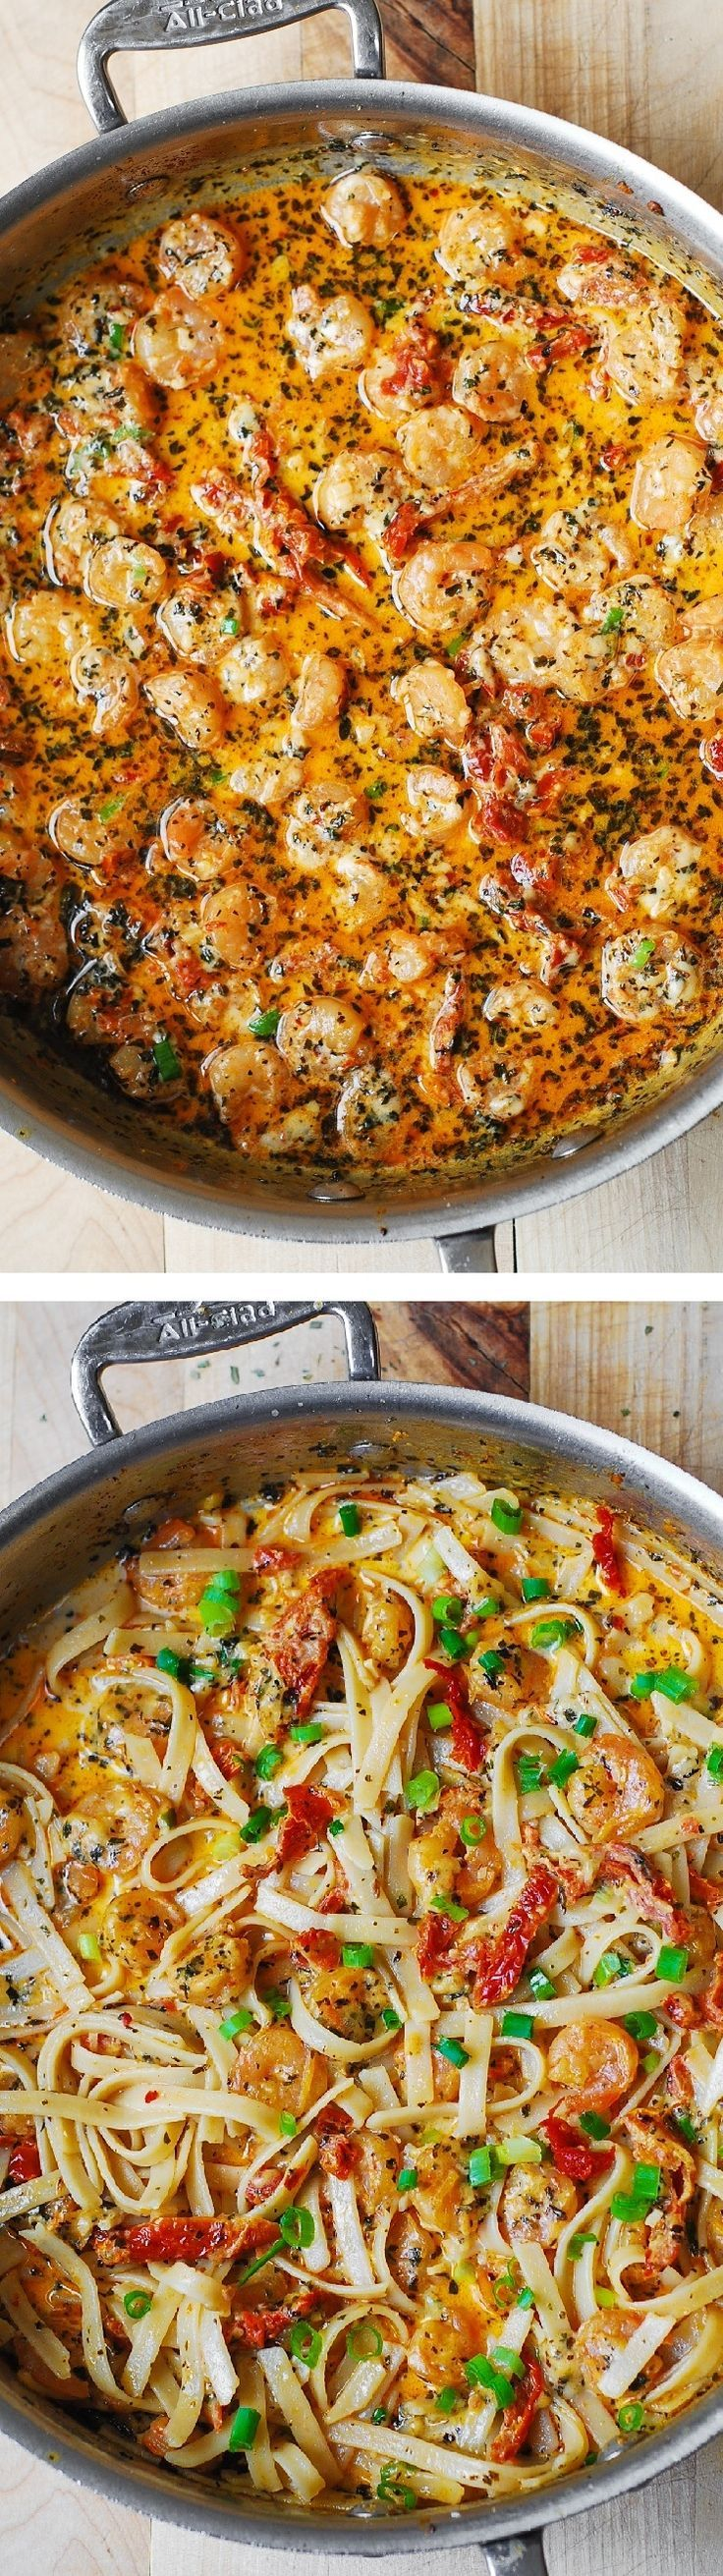 Garlic Shrimp and Sun-Dried Tomatoes with Pasta in Spicy Creamy Sauce, spiced up with basil and crushed red pepper. Italian comfort food that's super easy to make! JuliasAlbum.com #dinner #seafood #sh